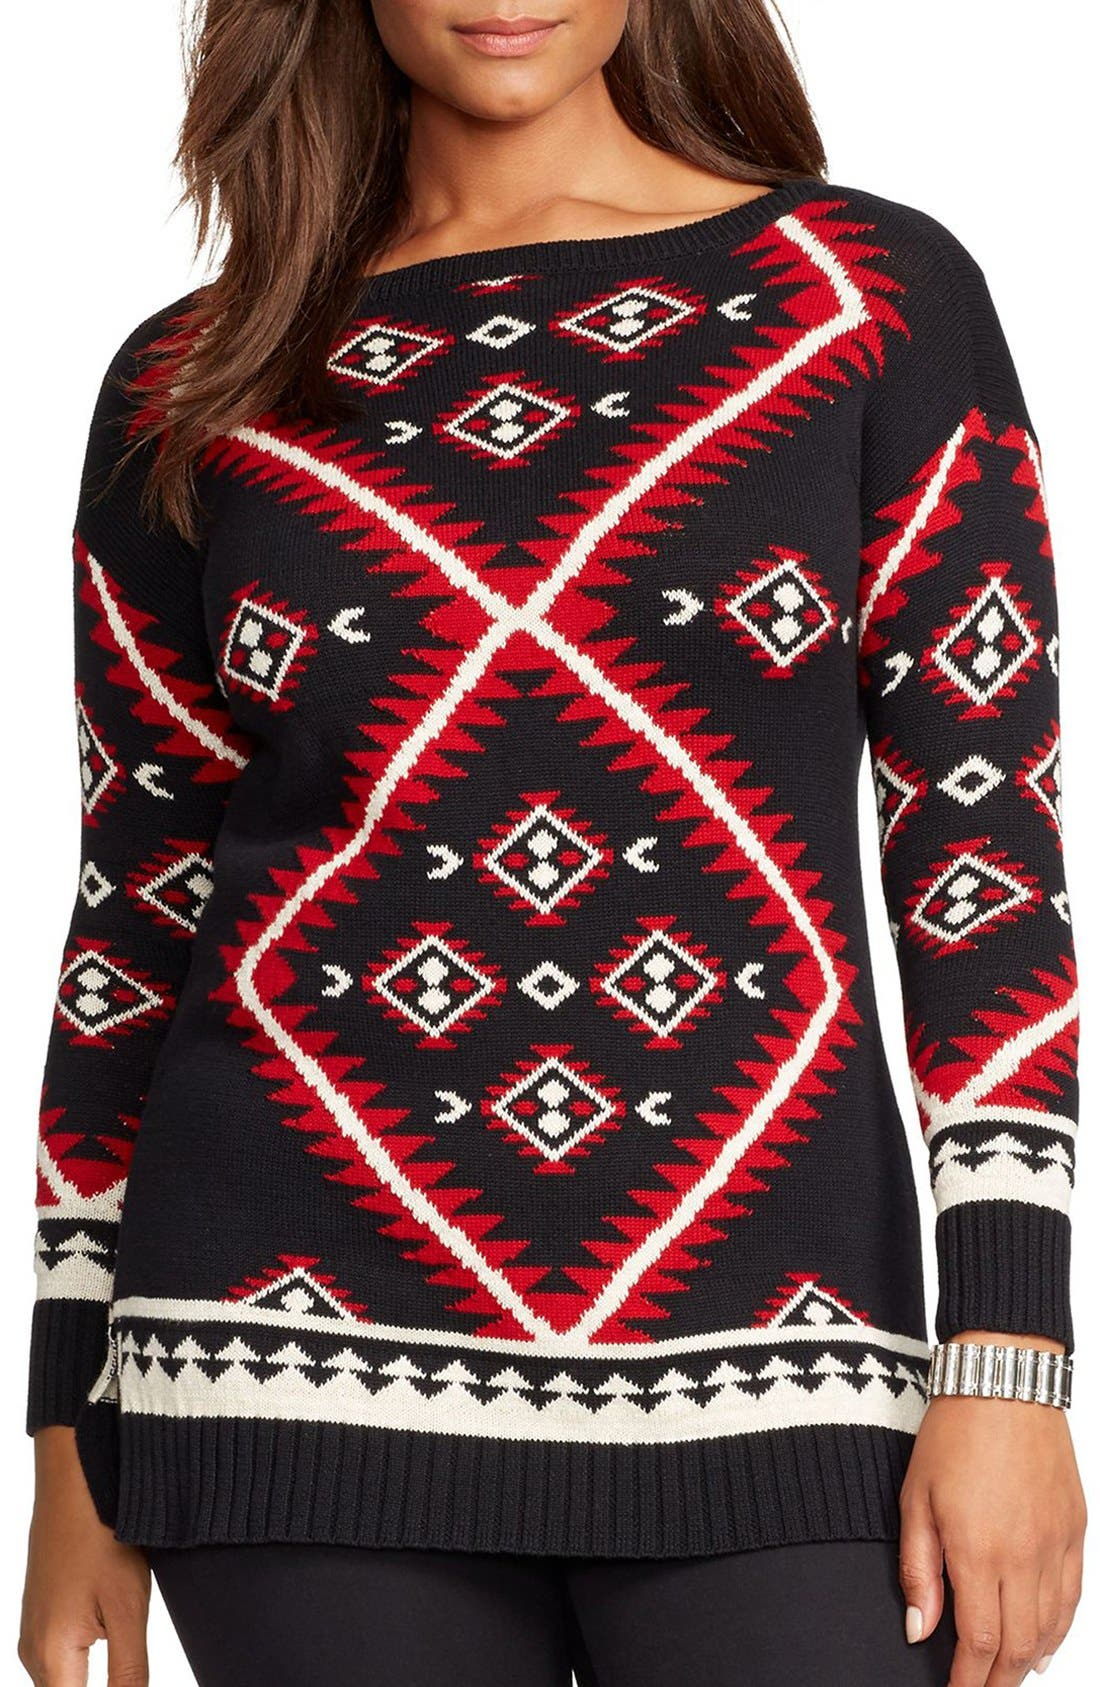 Alternate Image 1 Selected - Lauren Ralph Lauren Geometric Pattern Sweater (Plus Size)